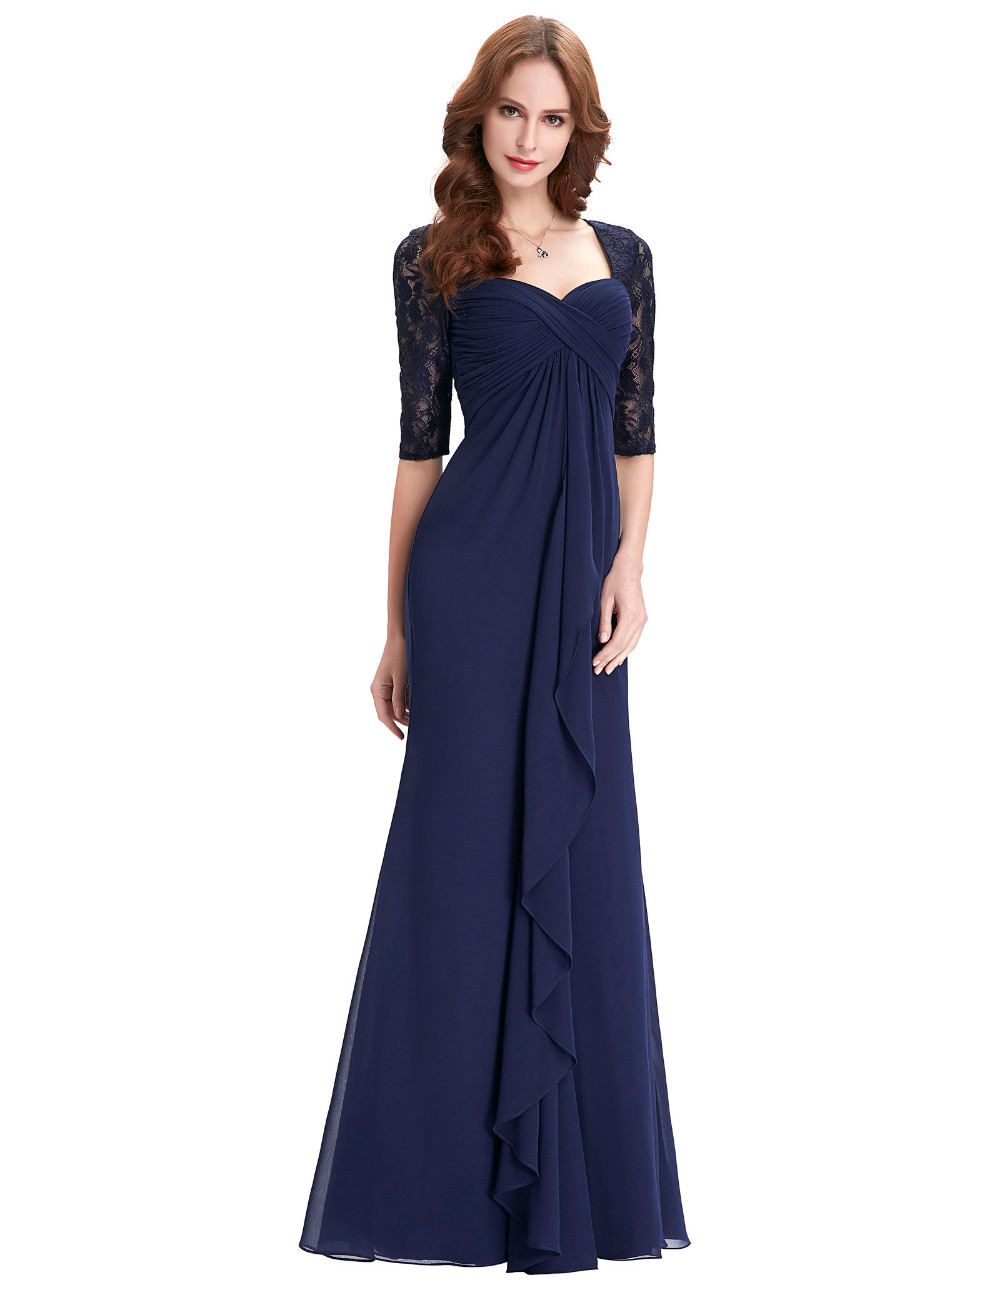 Navy Blue 2018 Mother of the Bride Dresses Lace Dress Elegant Half Sleeve Chiffon Ruffles Evening Dresses Mother Bride Gown